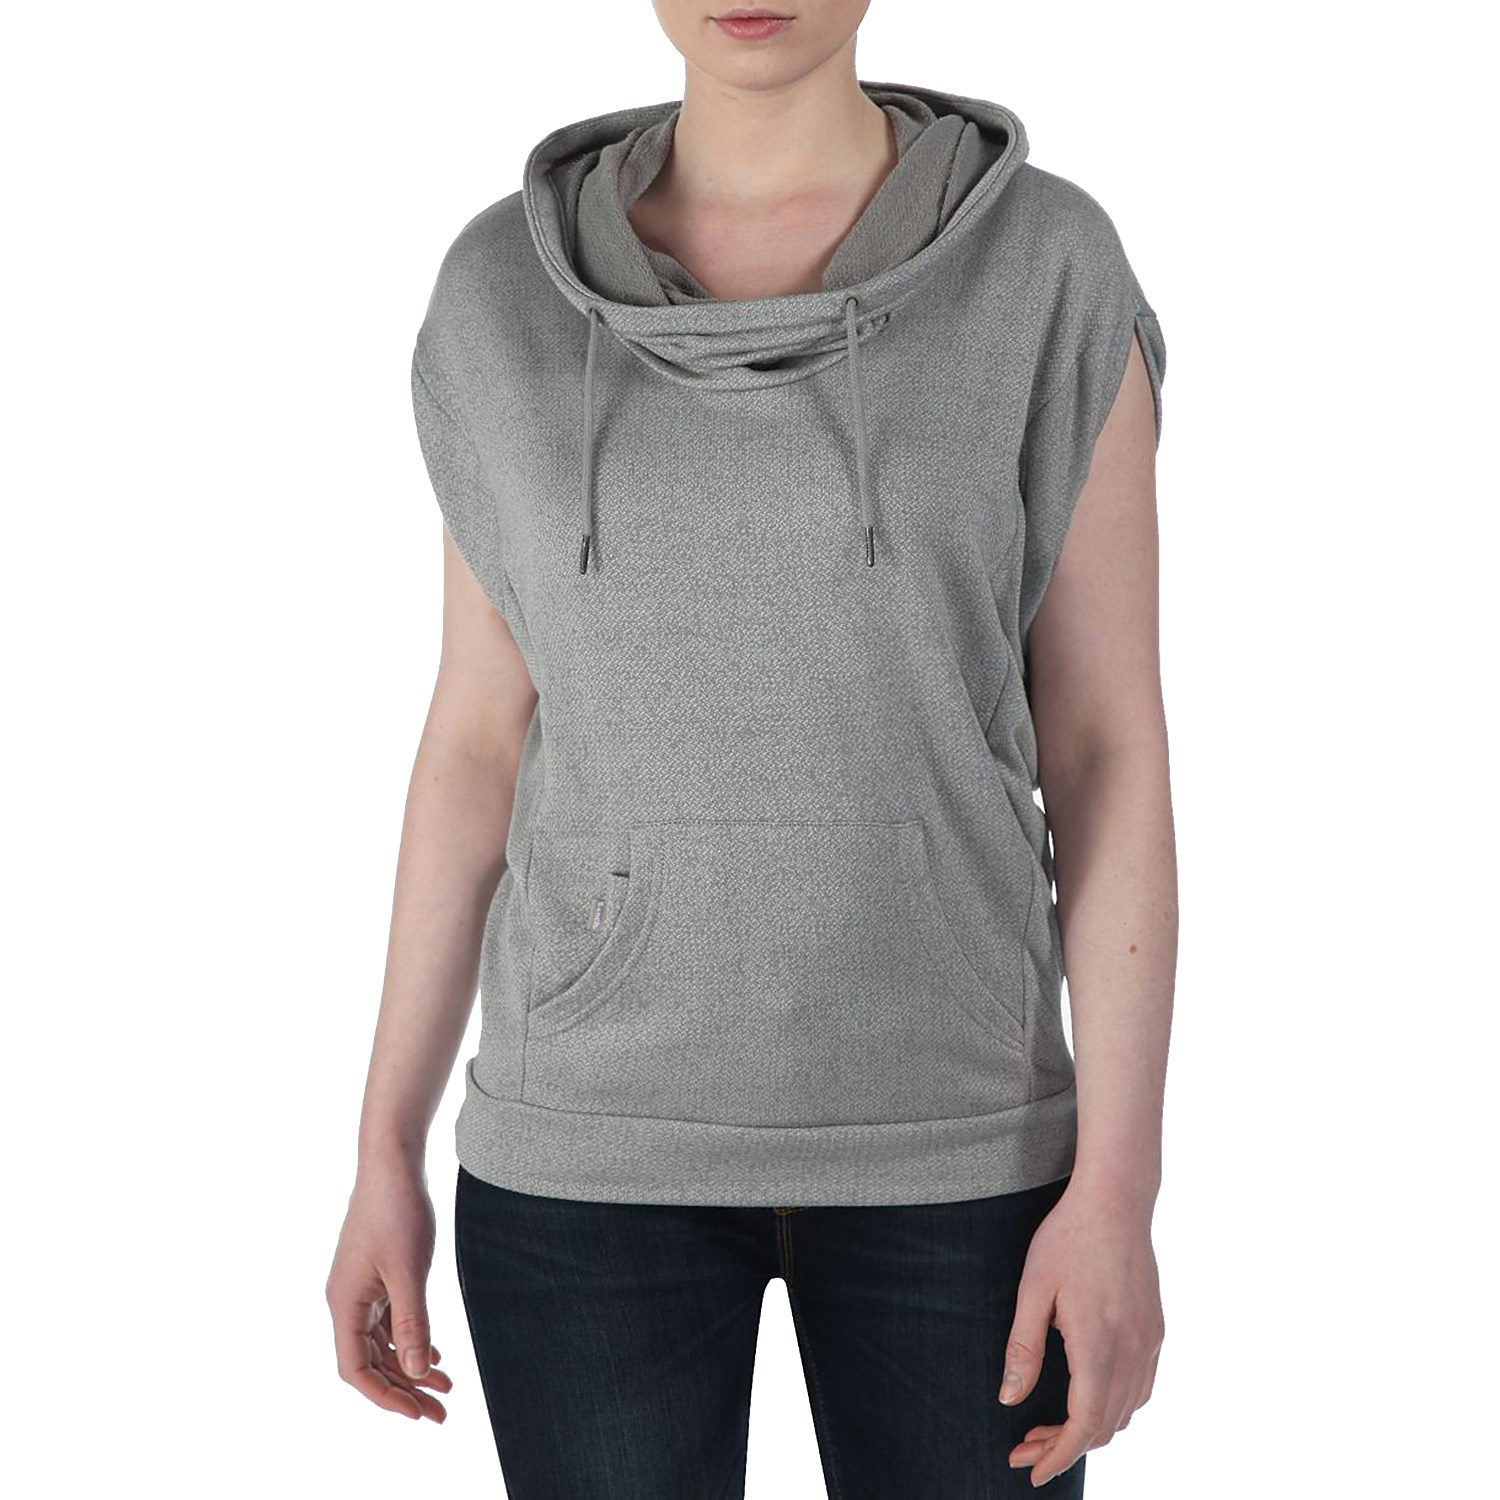 Womens Short Sleeve Sweatshirt T-Shirt Bench Amazing Price Really Online Official Site 2ysIlSRV